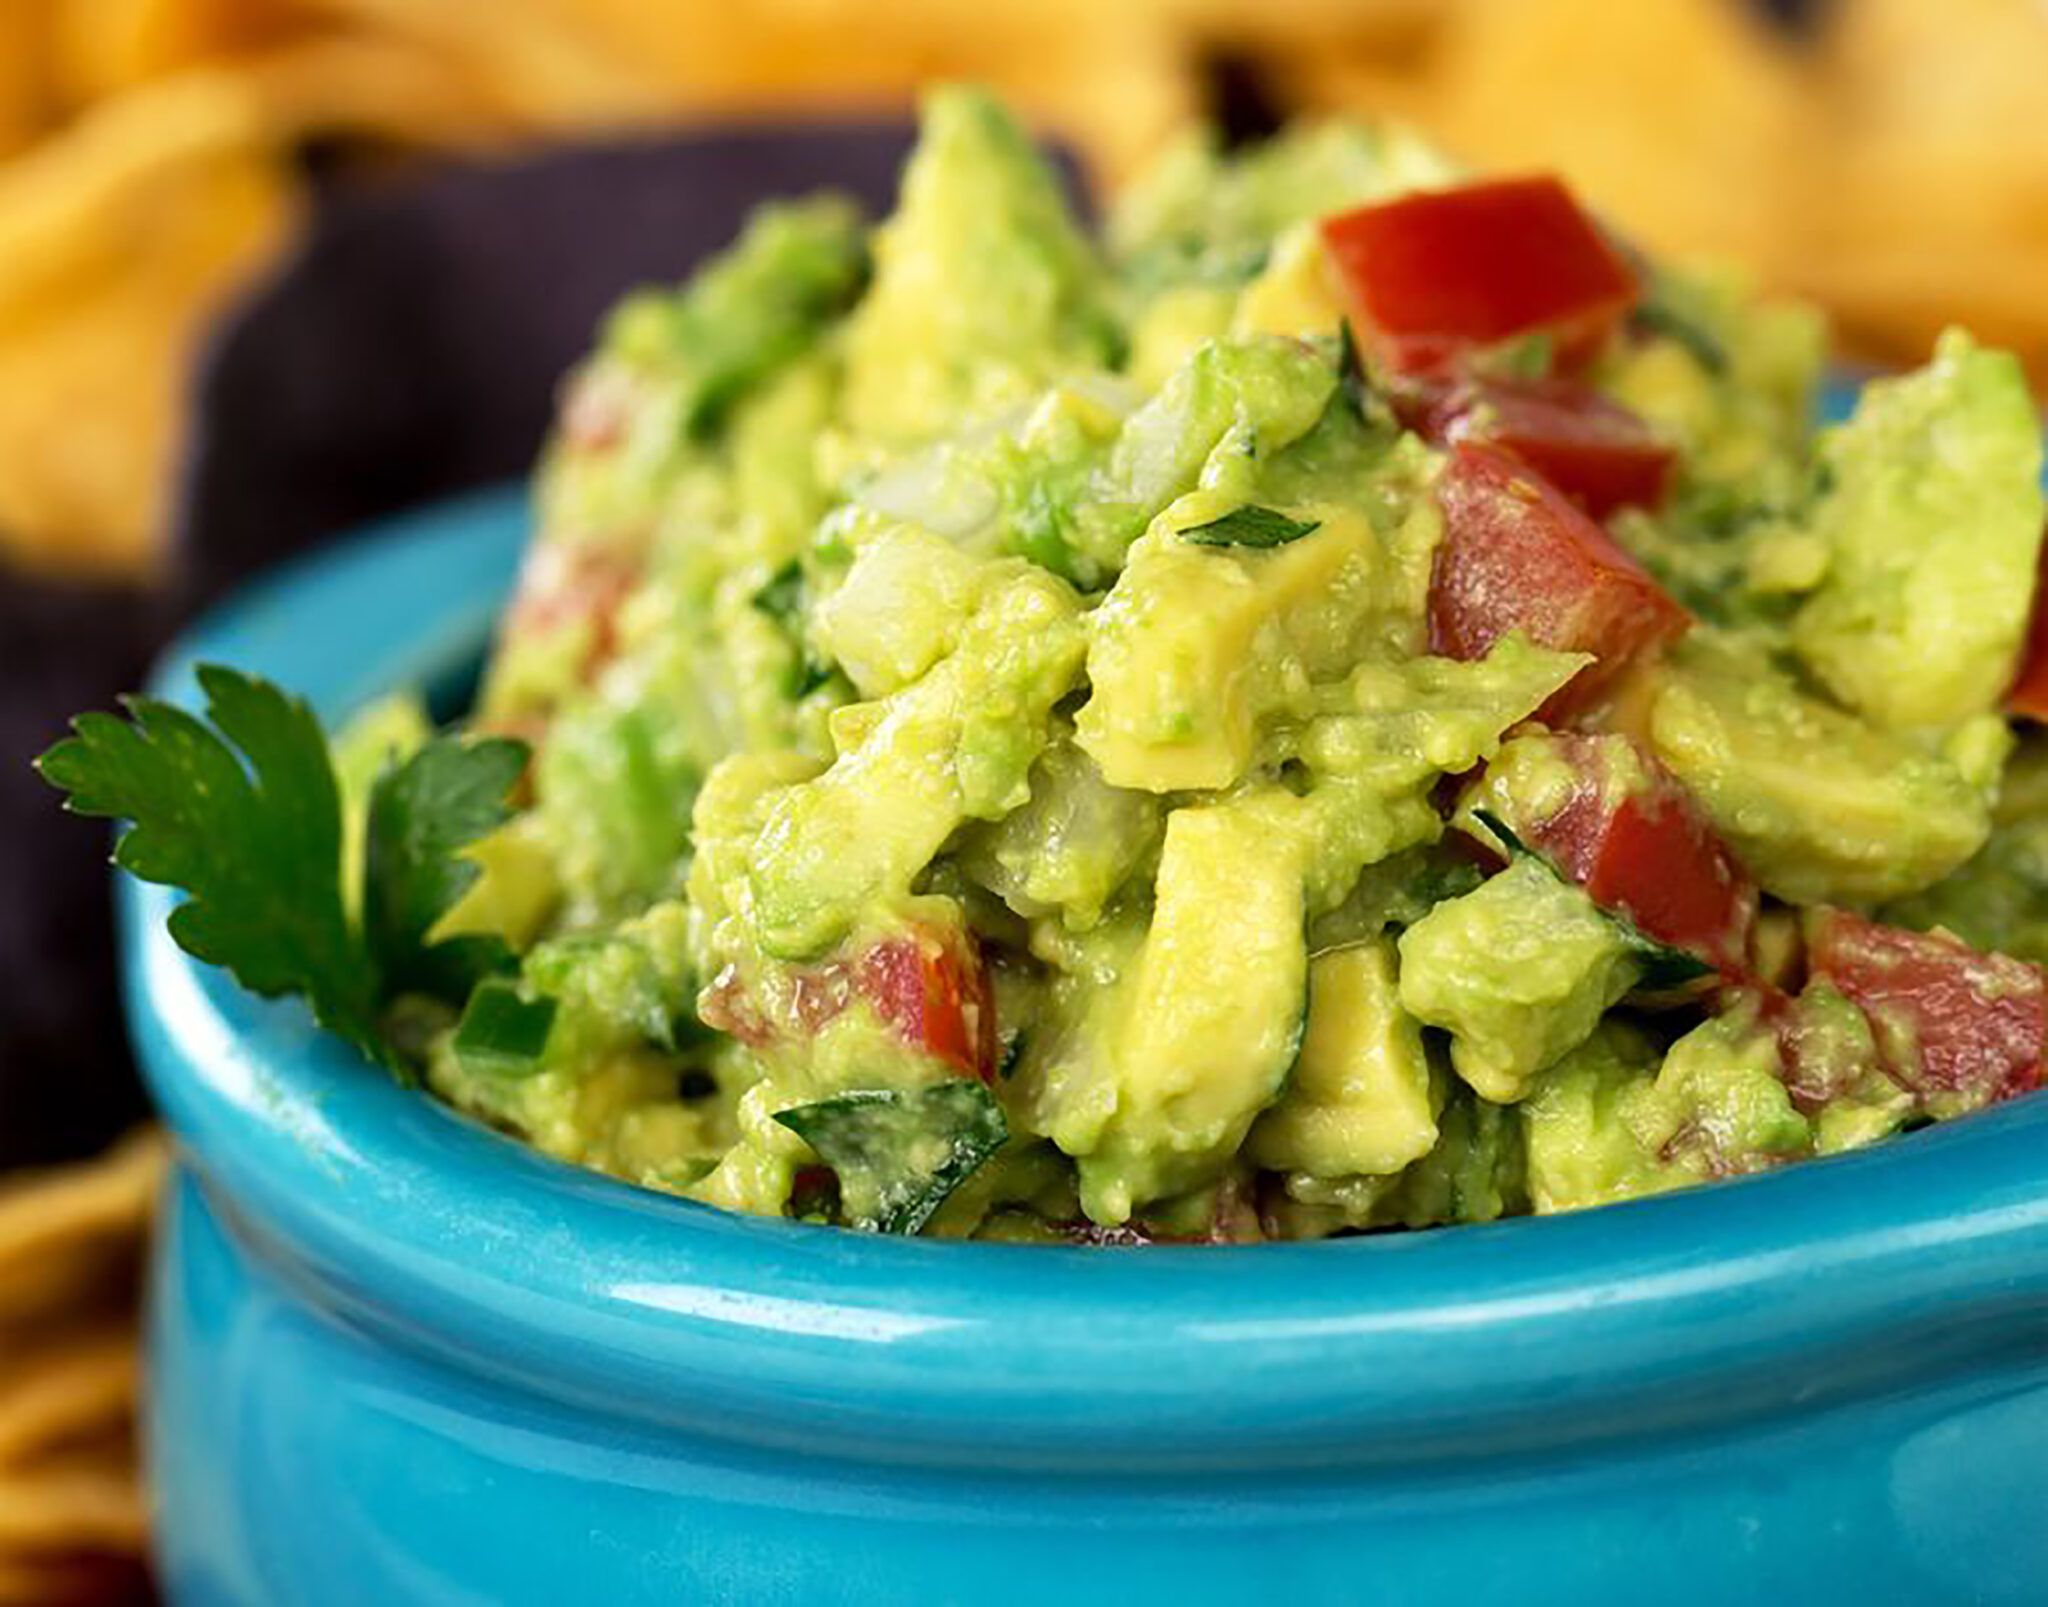 19625081 - a bowl of fresh guacamole with corn tortilla chips  intentional shallow depth of field